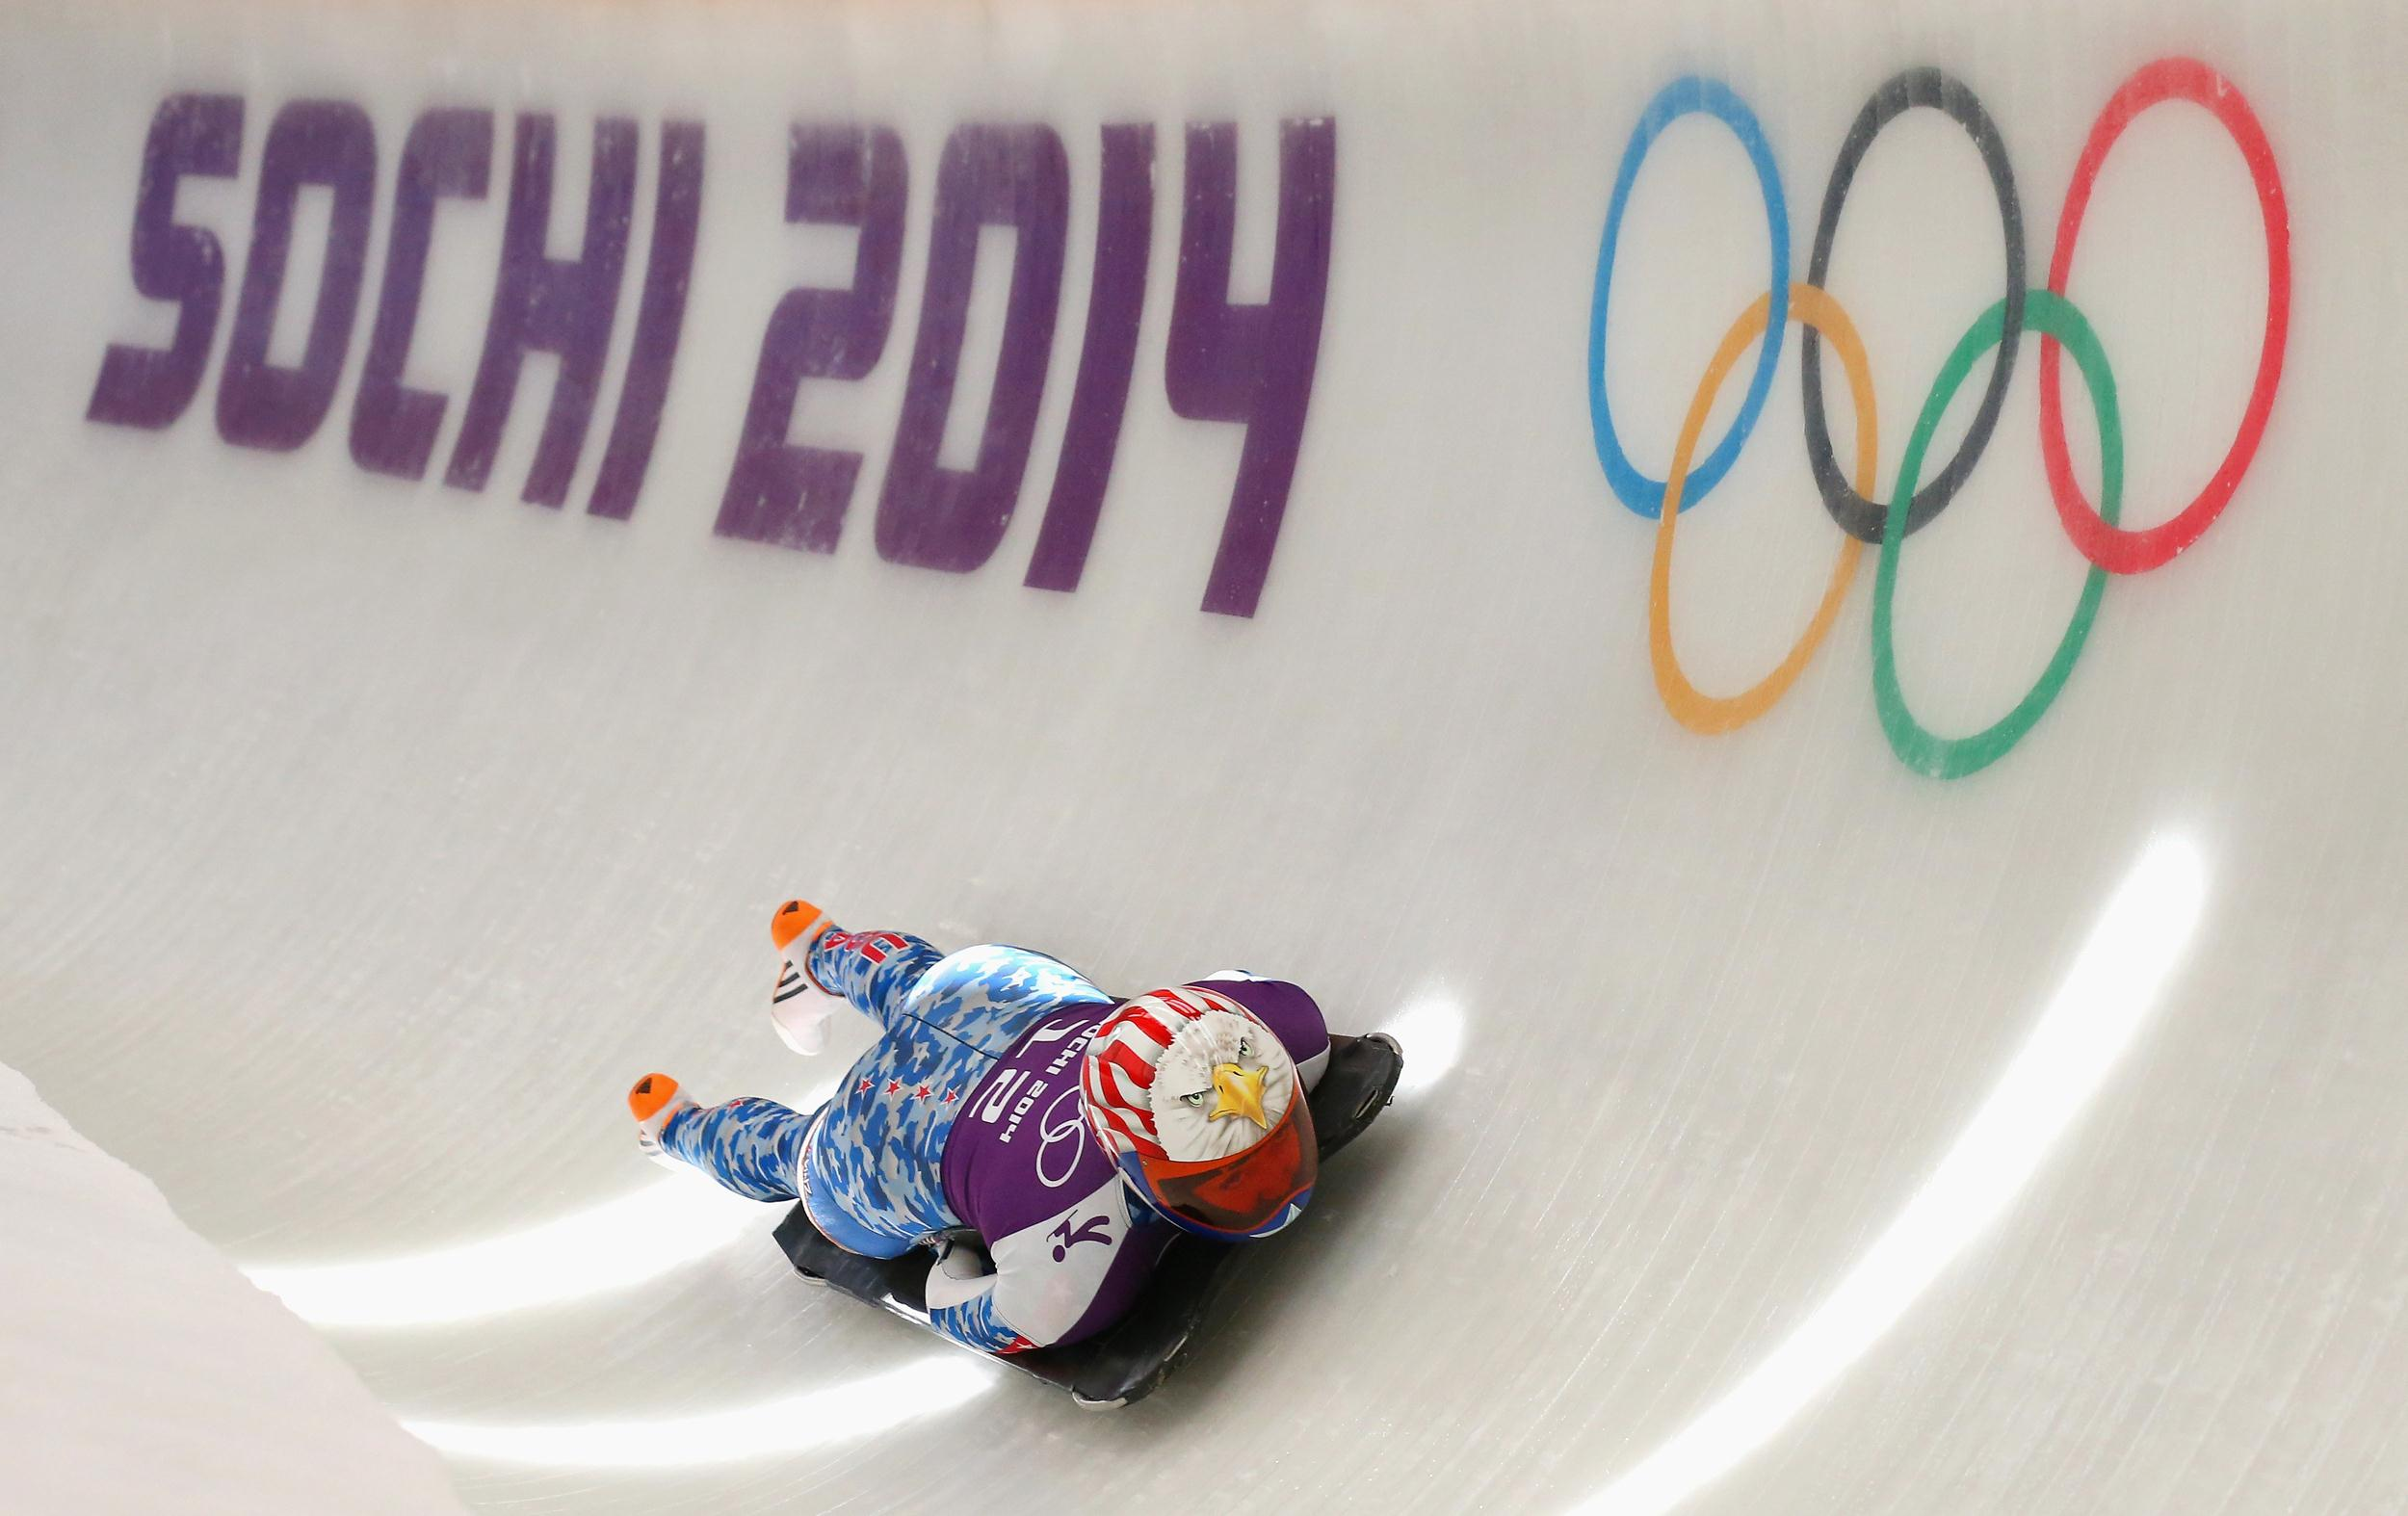 Image: Around the Games: Day 5 - 2014 Winter Olympic Games